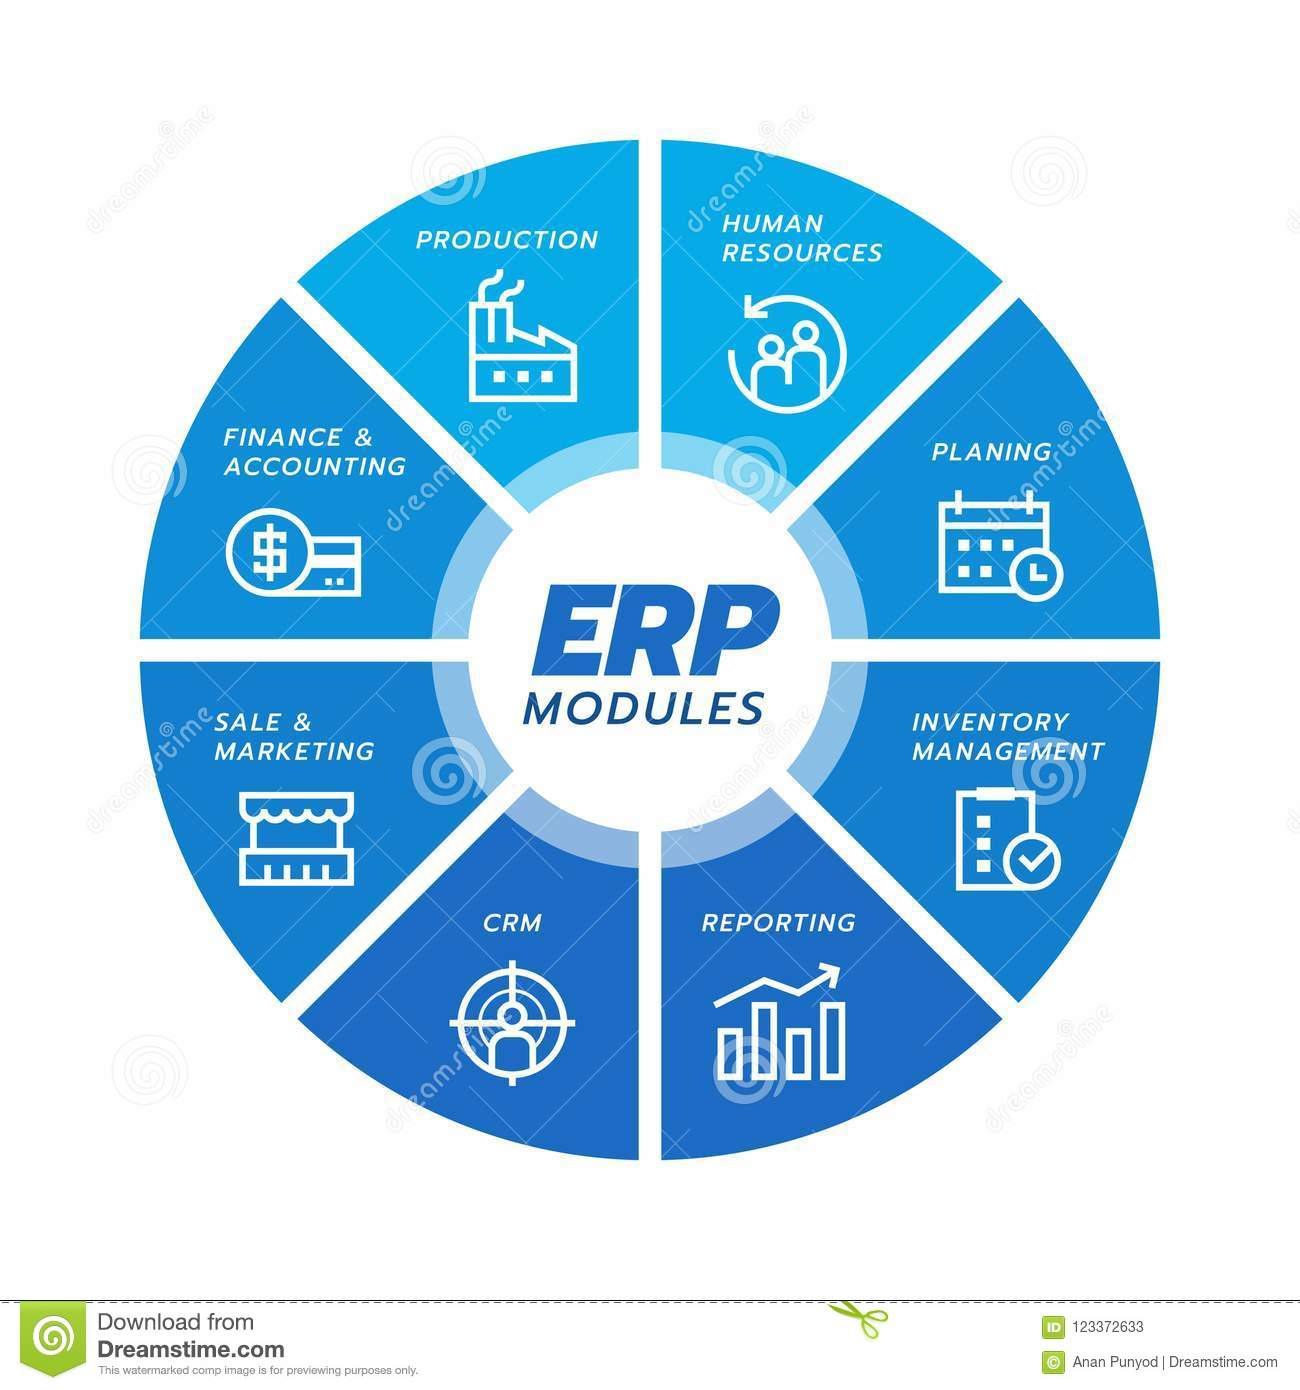 Enterprise Resource Planning ERP Module Icon Construction On